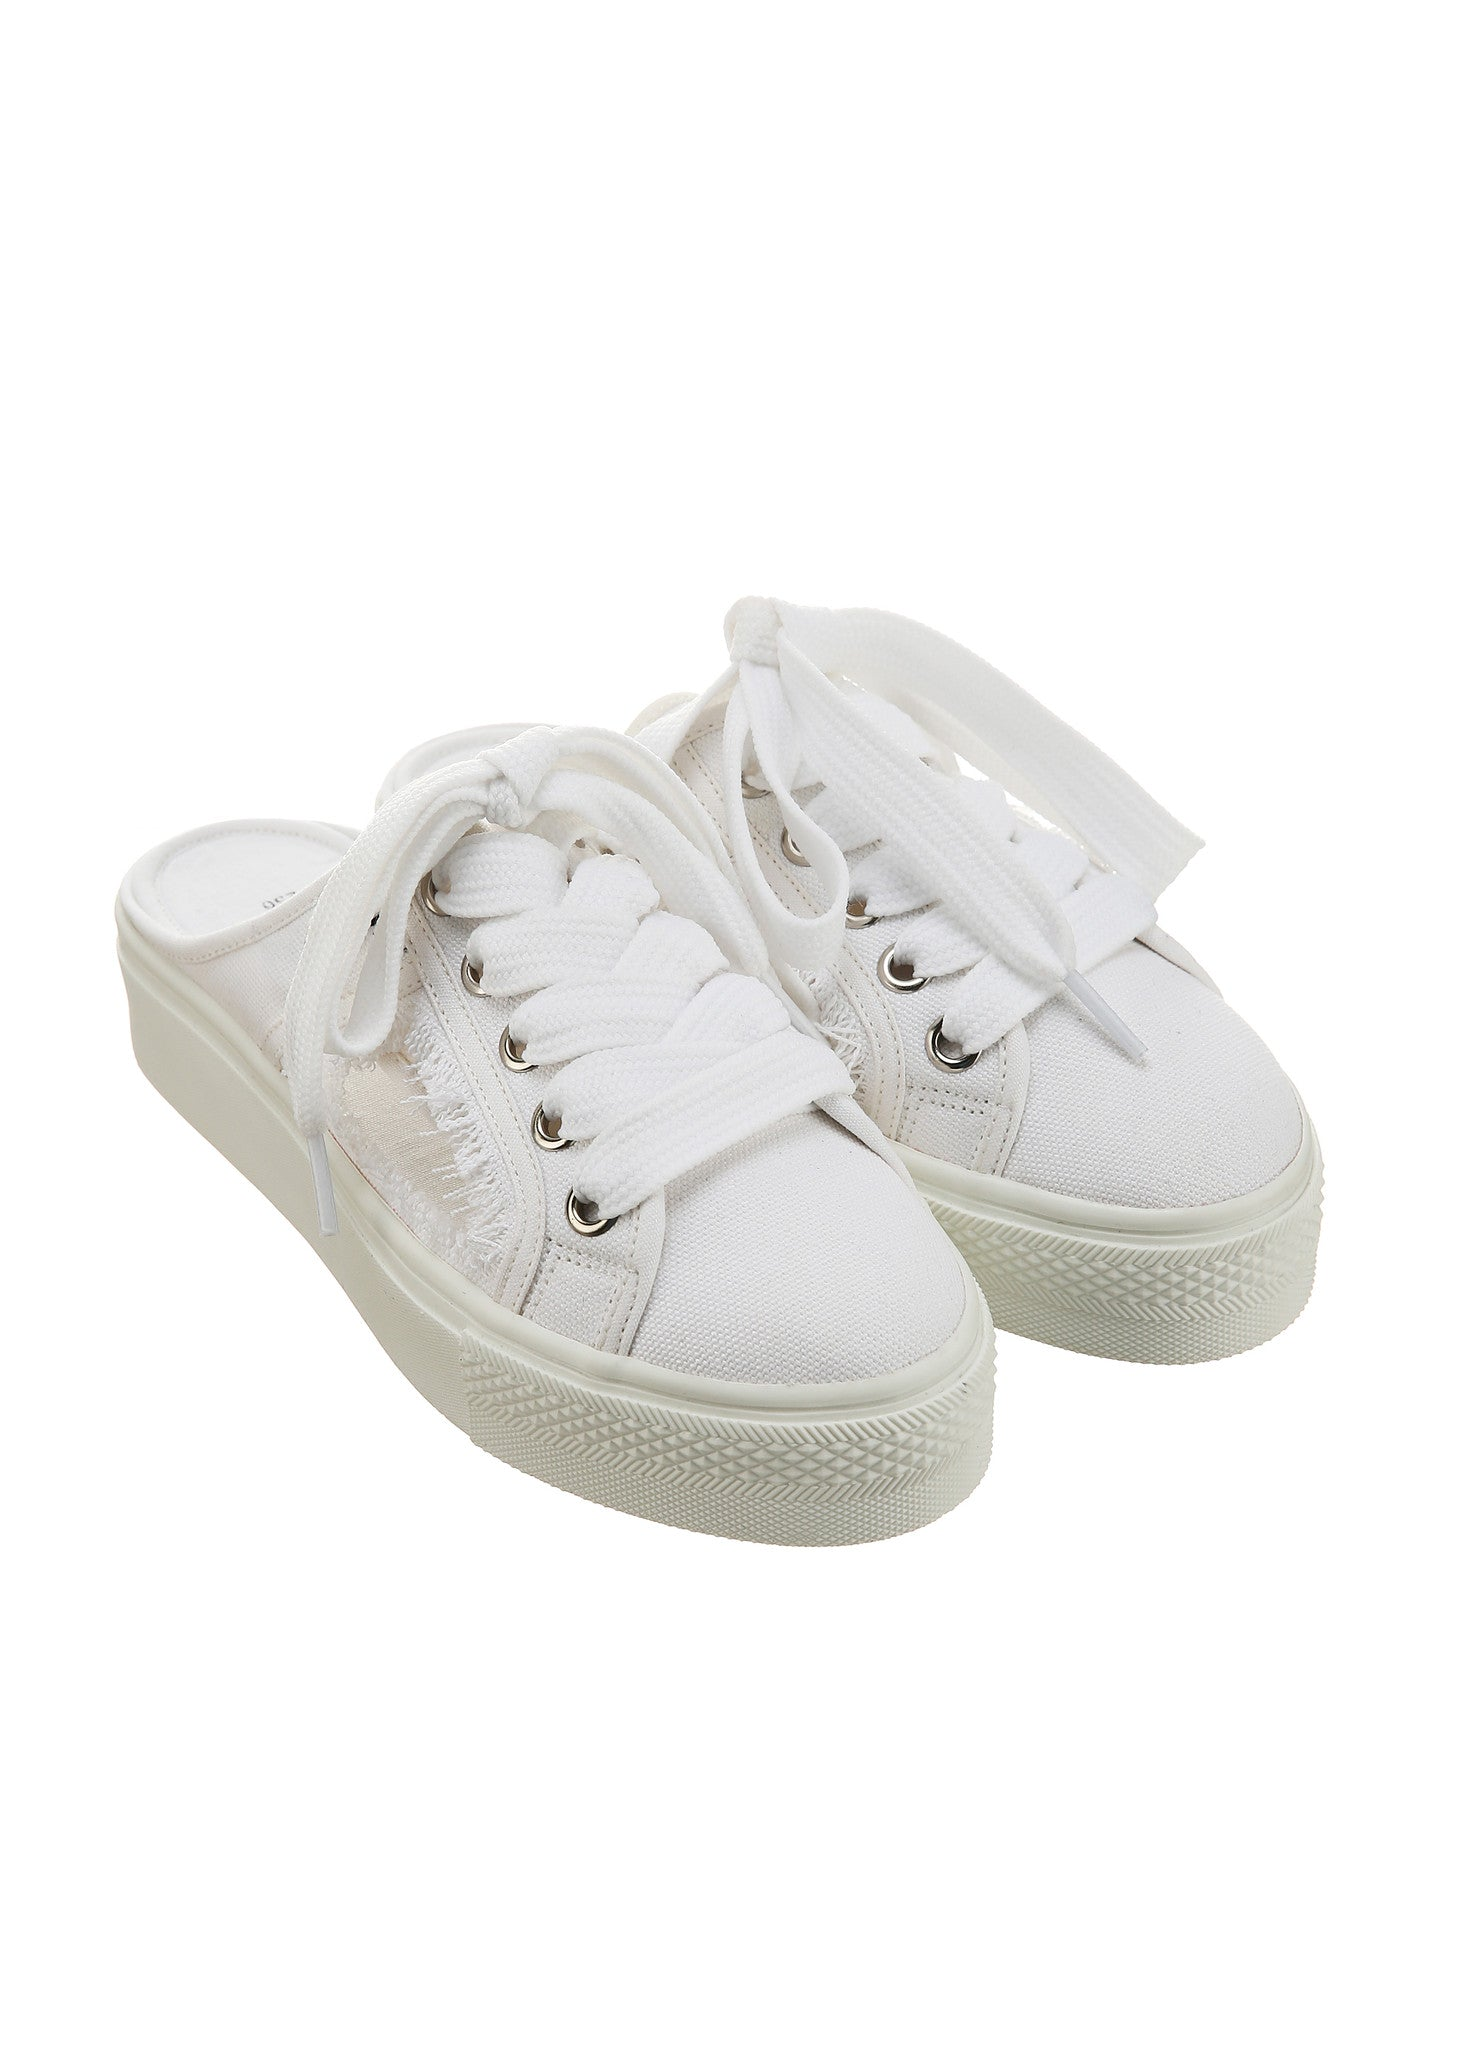 SJYP CUT OFF MULE SNEAKERS white